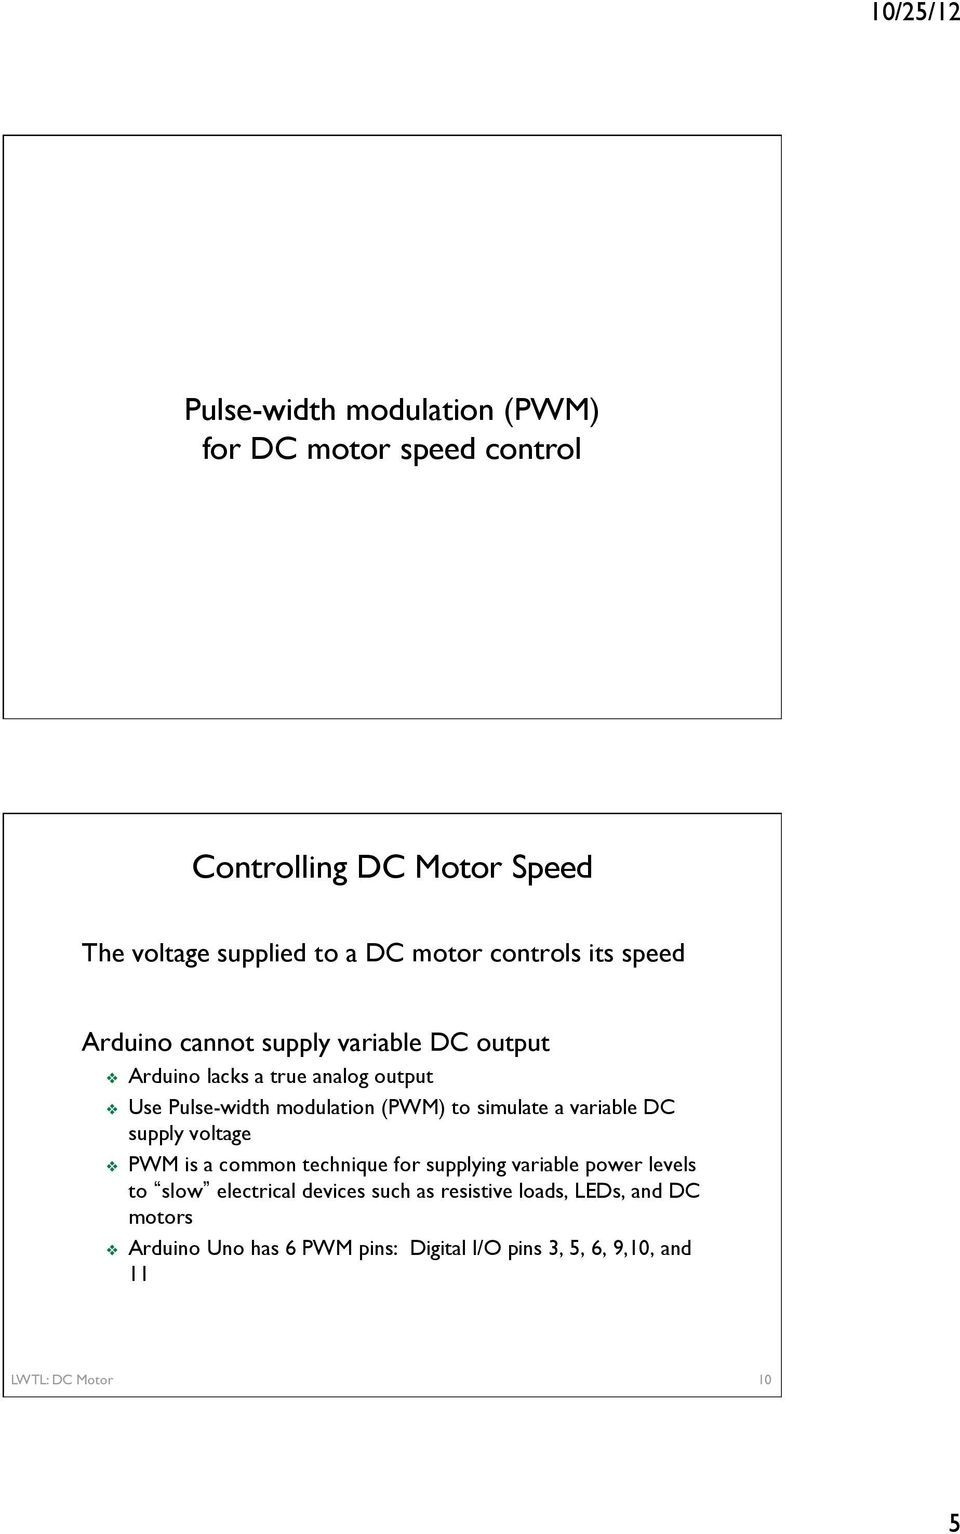 Basic Dc Motor Circuits Pdf Is A Circuit To Control Speed Uses Pulse Width Modulation Pwm Simulate Variable Supply Voltage Common Technique For